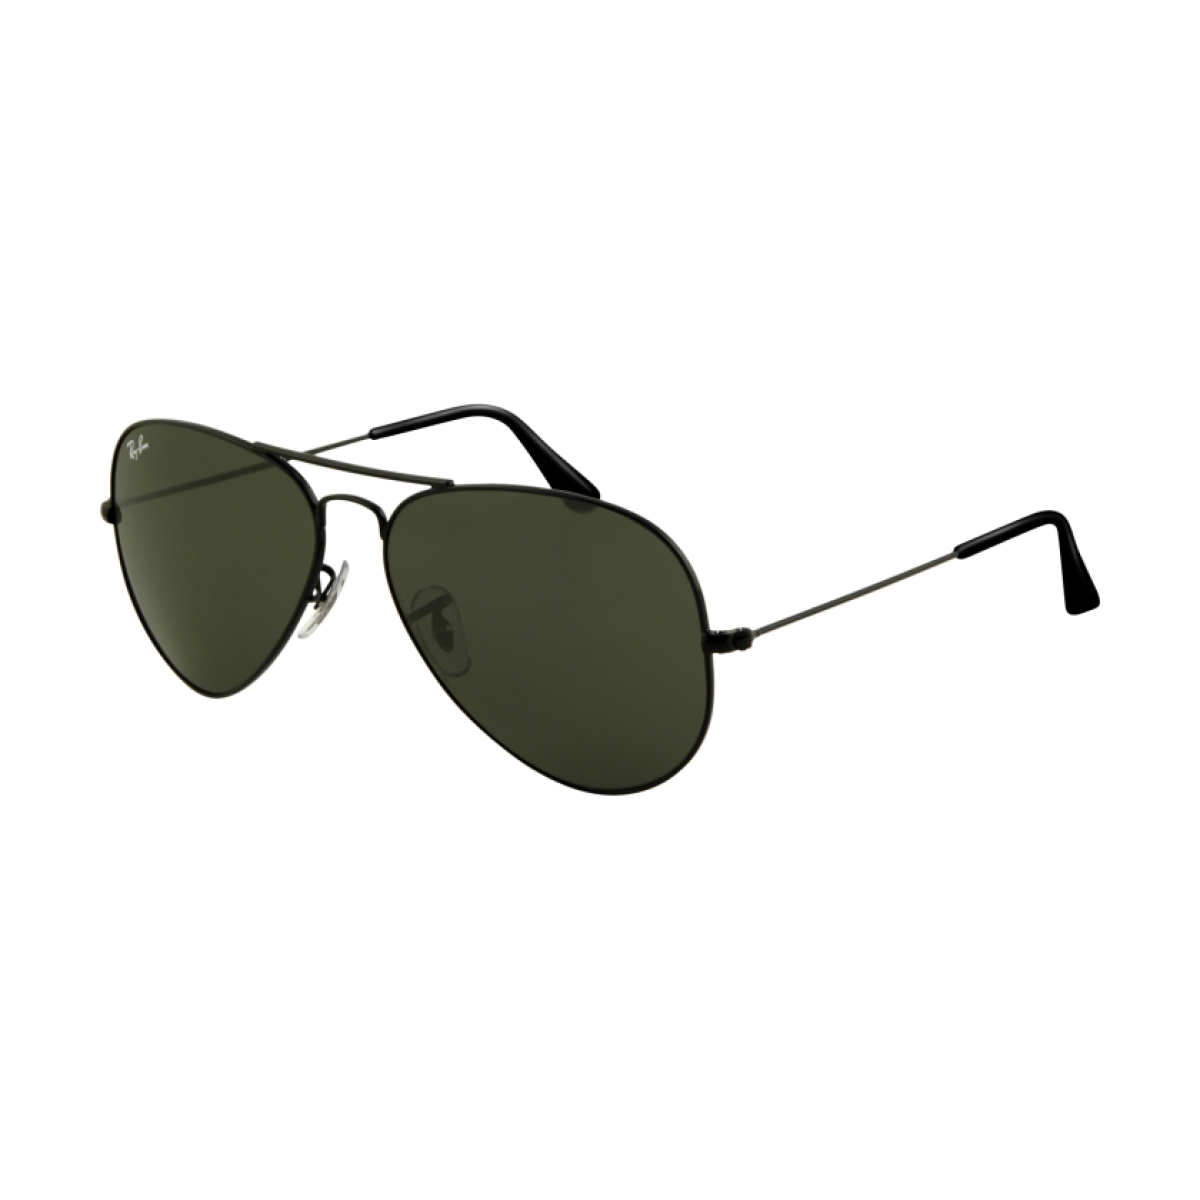 Ray ban glasses png. Super sport picture transparentpng